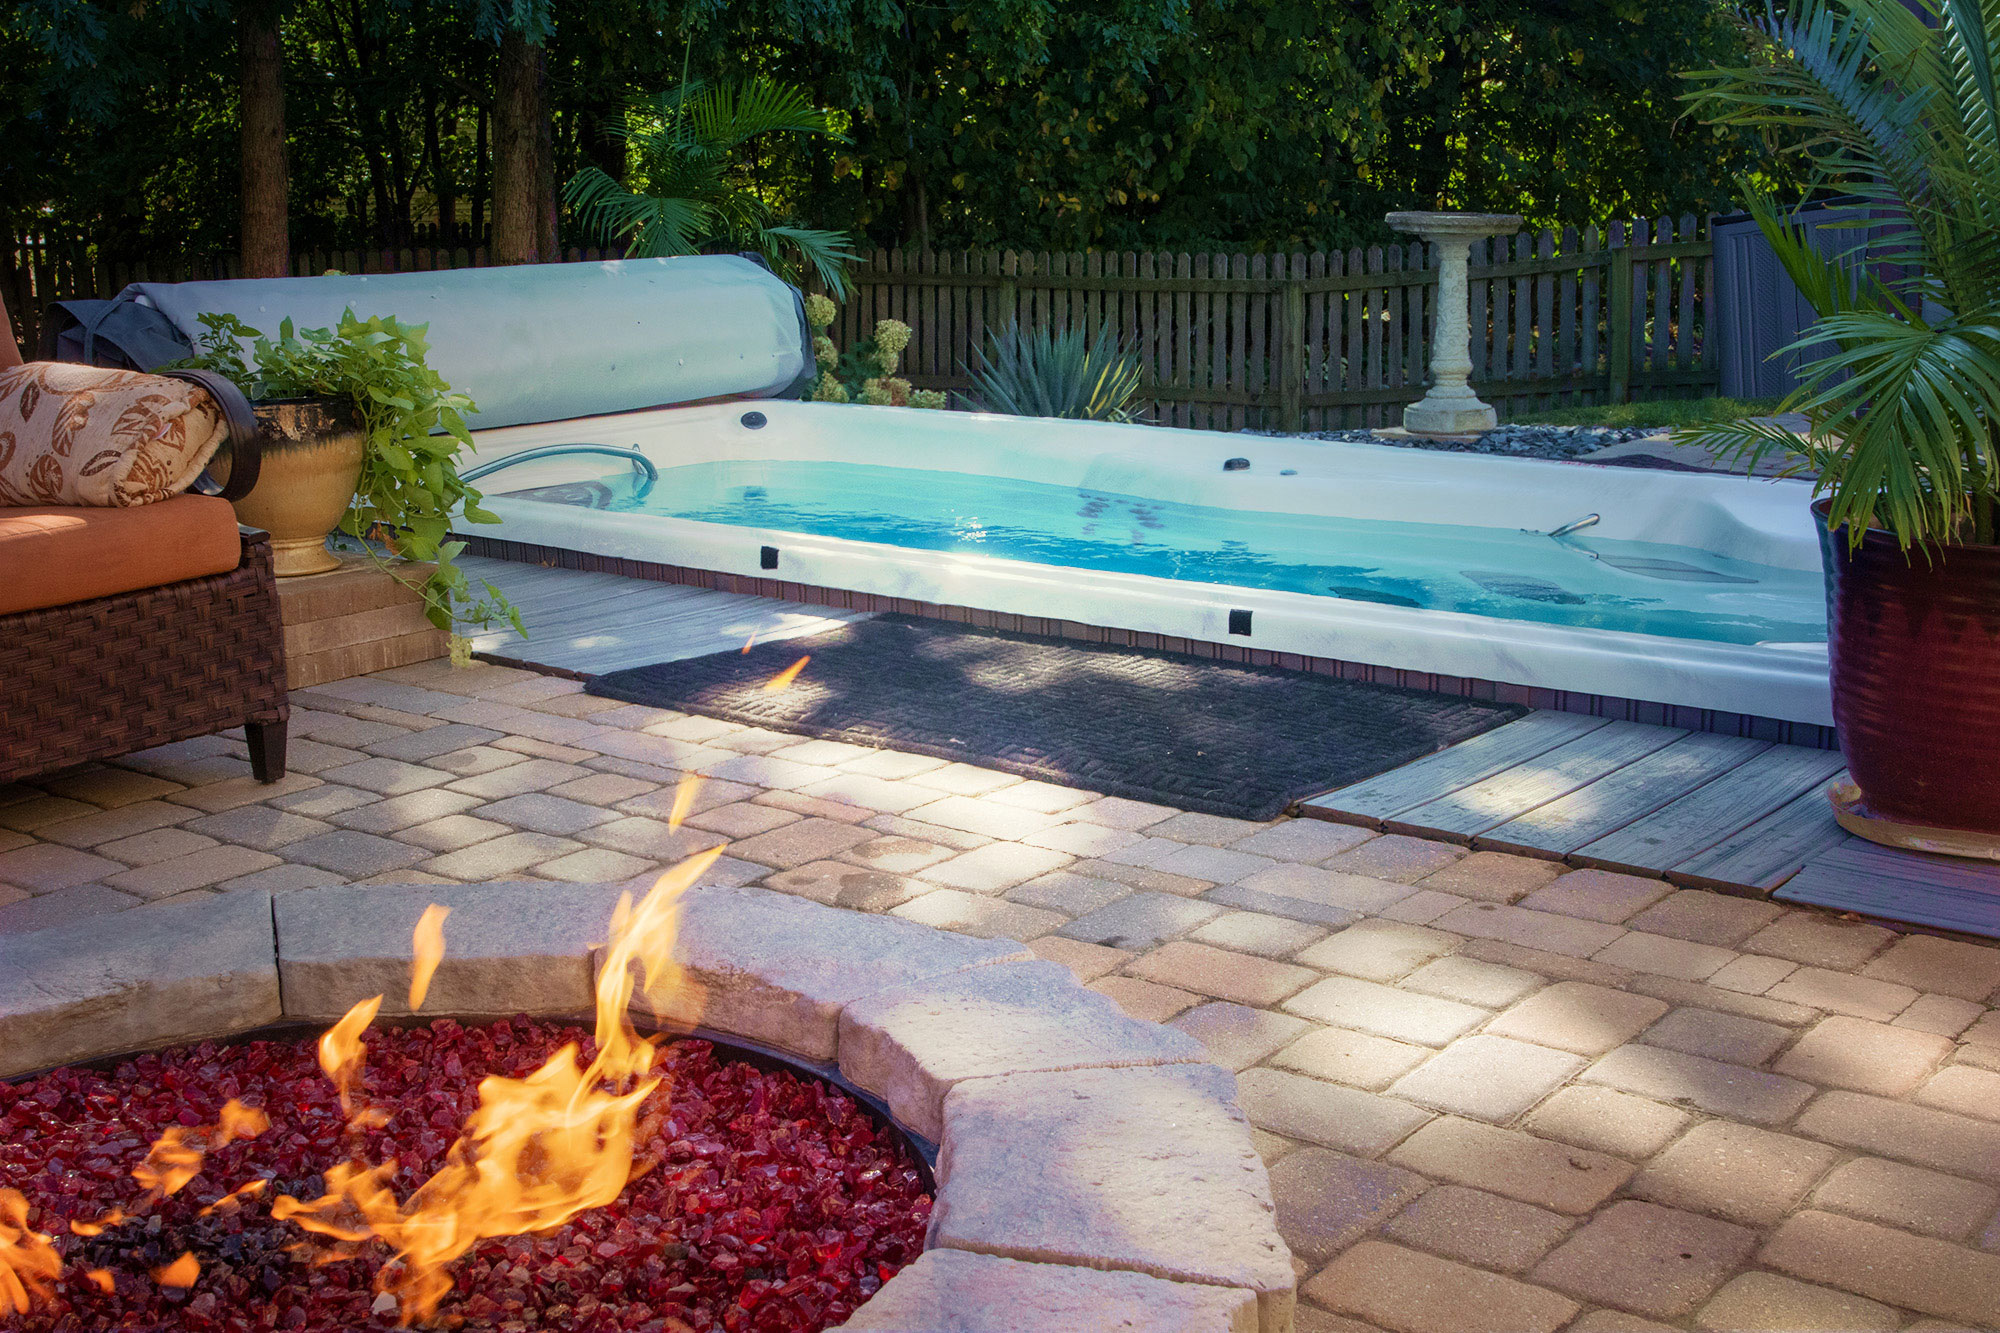 Fire and Water: Fire Pit and Hot Tub Backyard Inspiration ... on Fire Pit Inspiration  id=46451